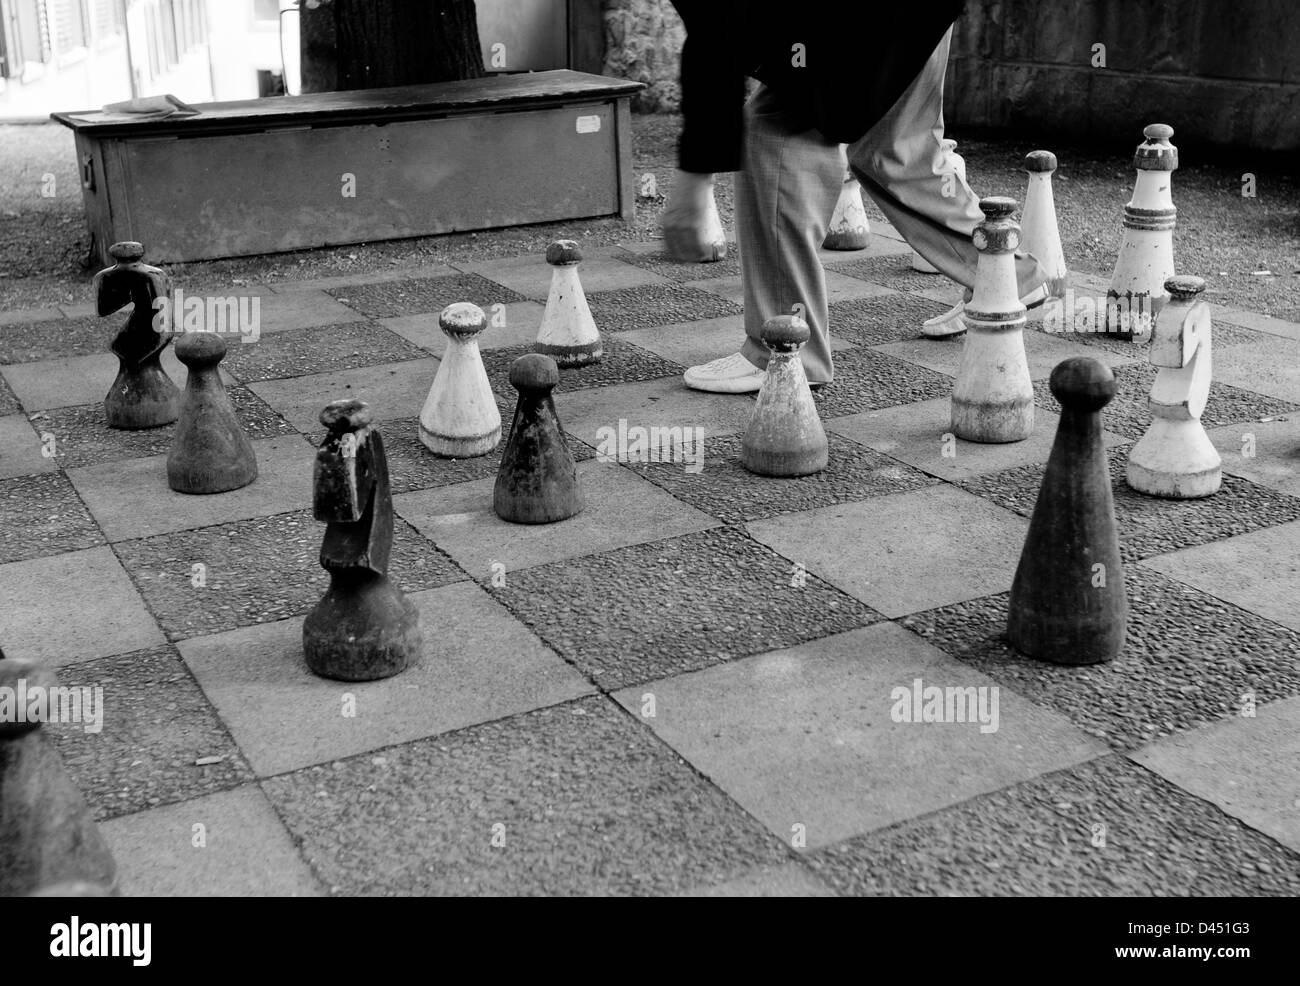 giant chess set in the floor, black and white - Stock Image